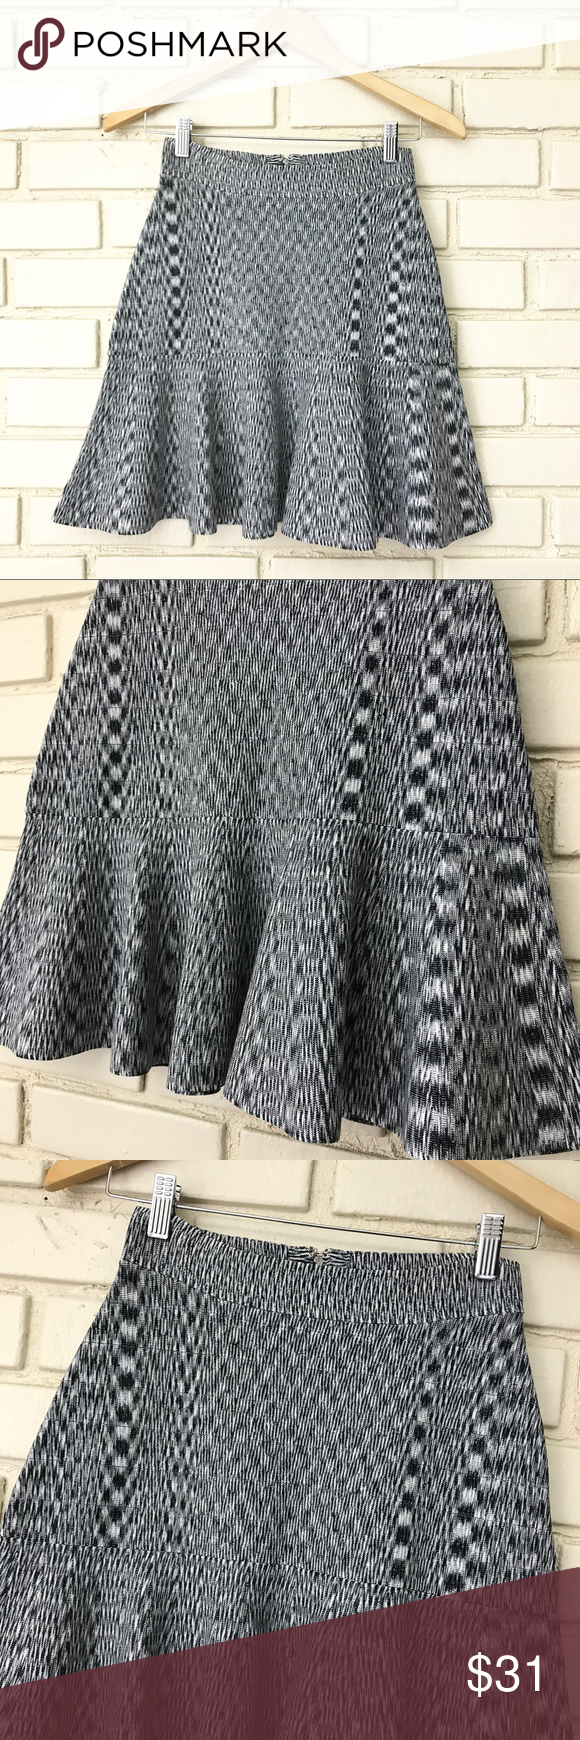 Guess - Stretchy fit and flare Ruffle skirt M Guess -  stretchy fit and flare skirt with Ruffle at the bottom. Please see photo of drawn diagram for approximate measurements. Back zipper enclosure and hook and eye. Great condition! Guess Skirts